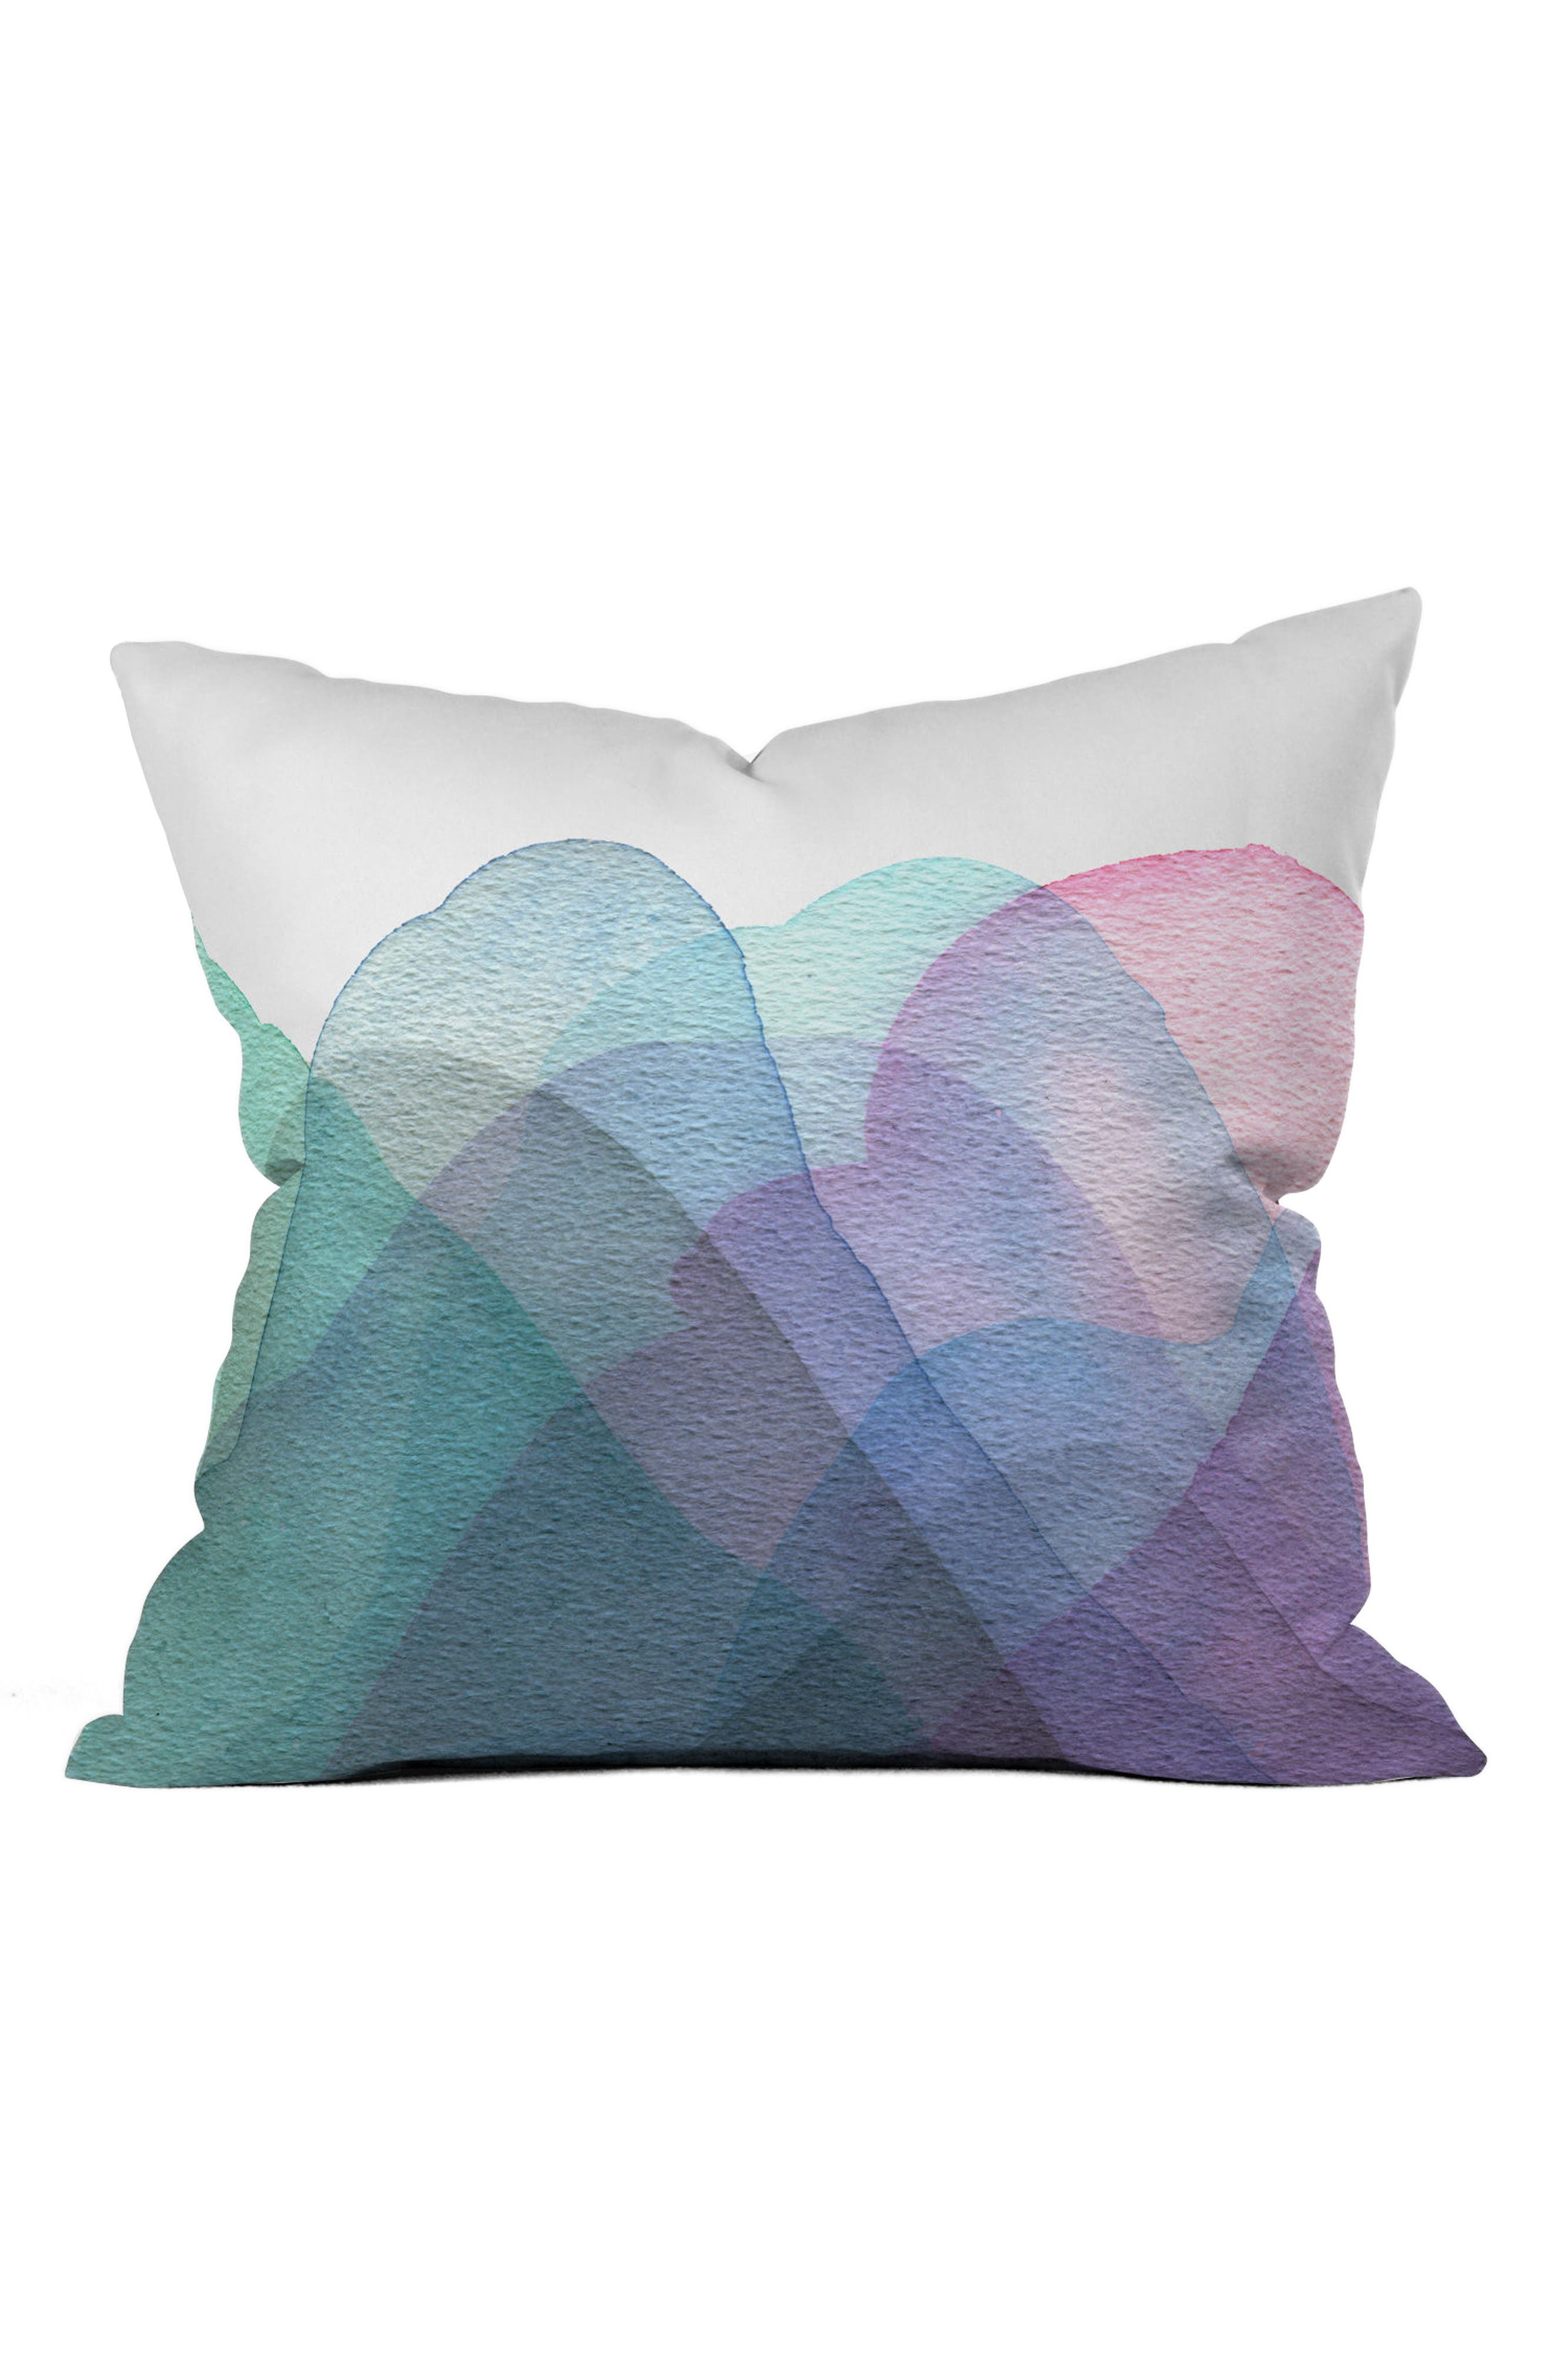 Layers Pillow,                         Main,                         color, 400